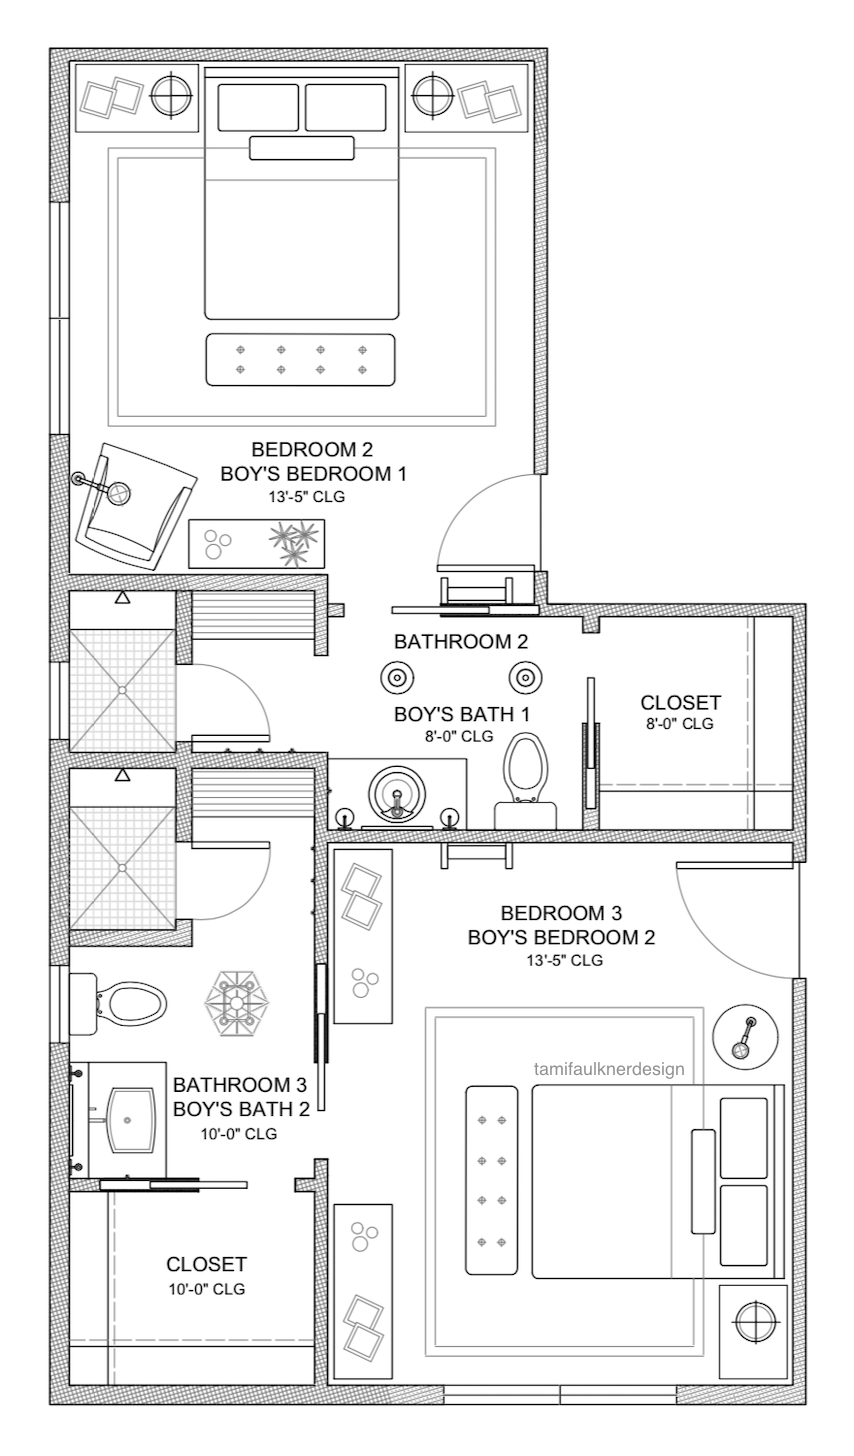 Tami Faulkner design, house plans, Sacramento ca